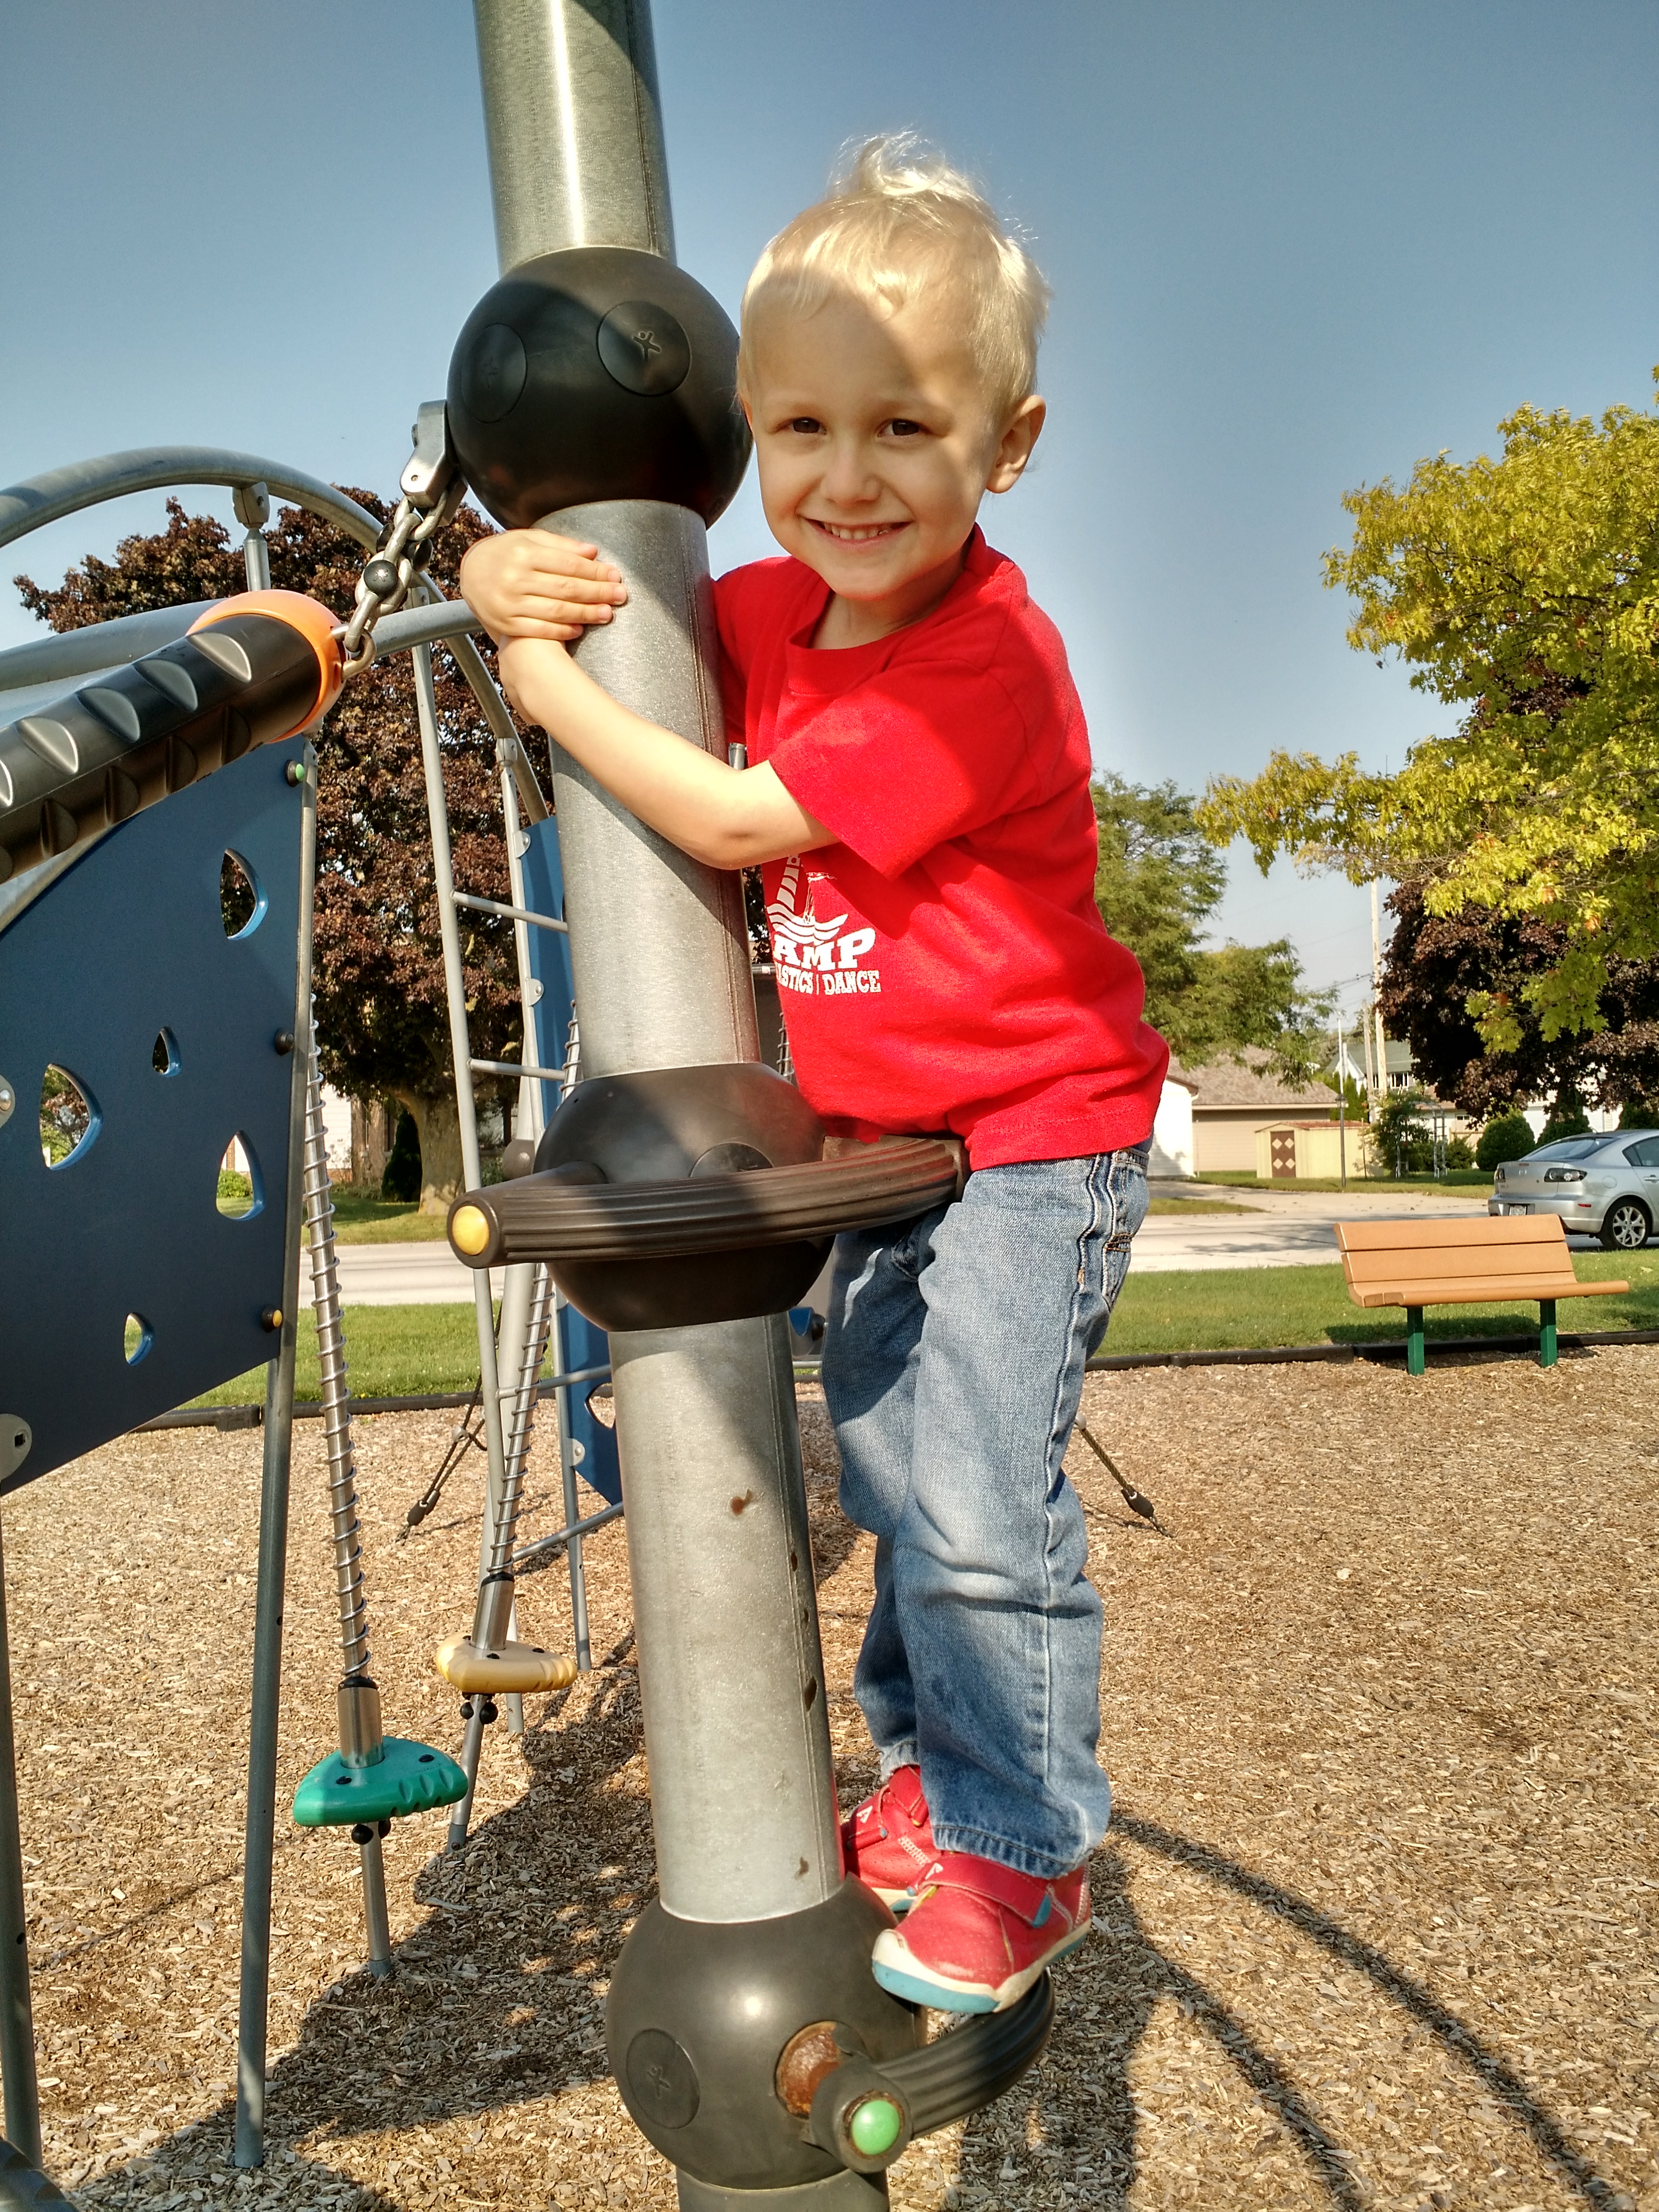 My son playing at a park